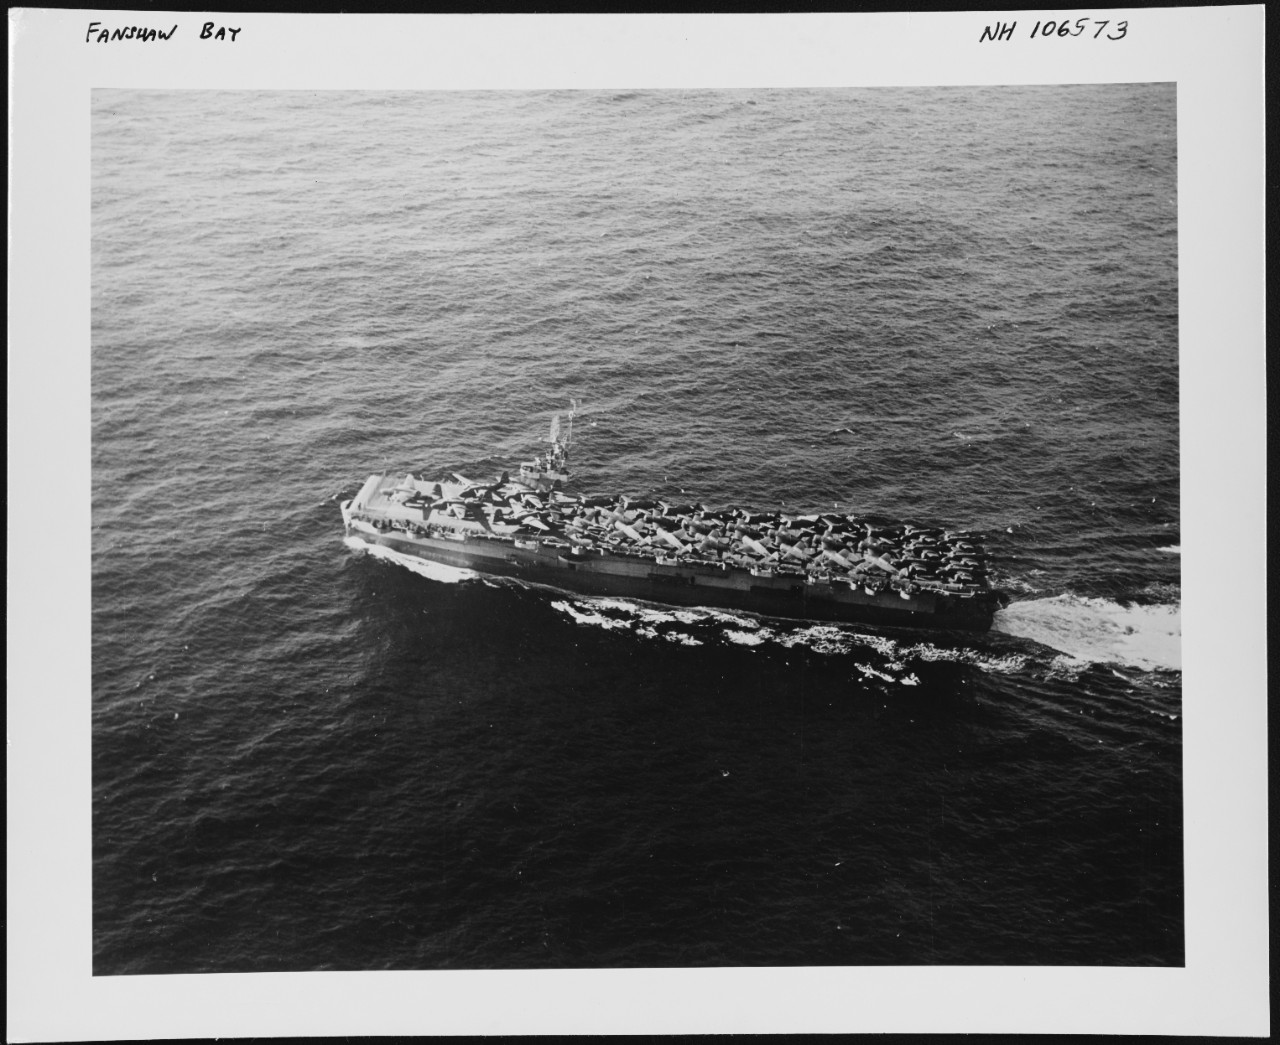 Photo # NH 106573  USS Fanshaw Bay